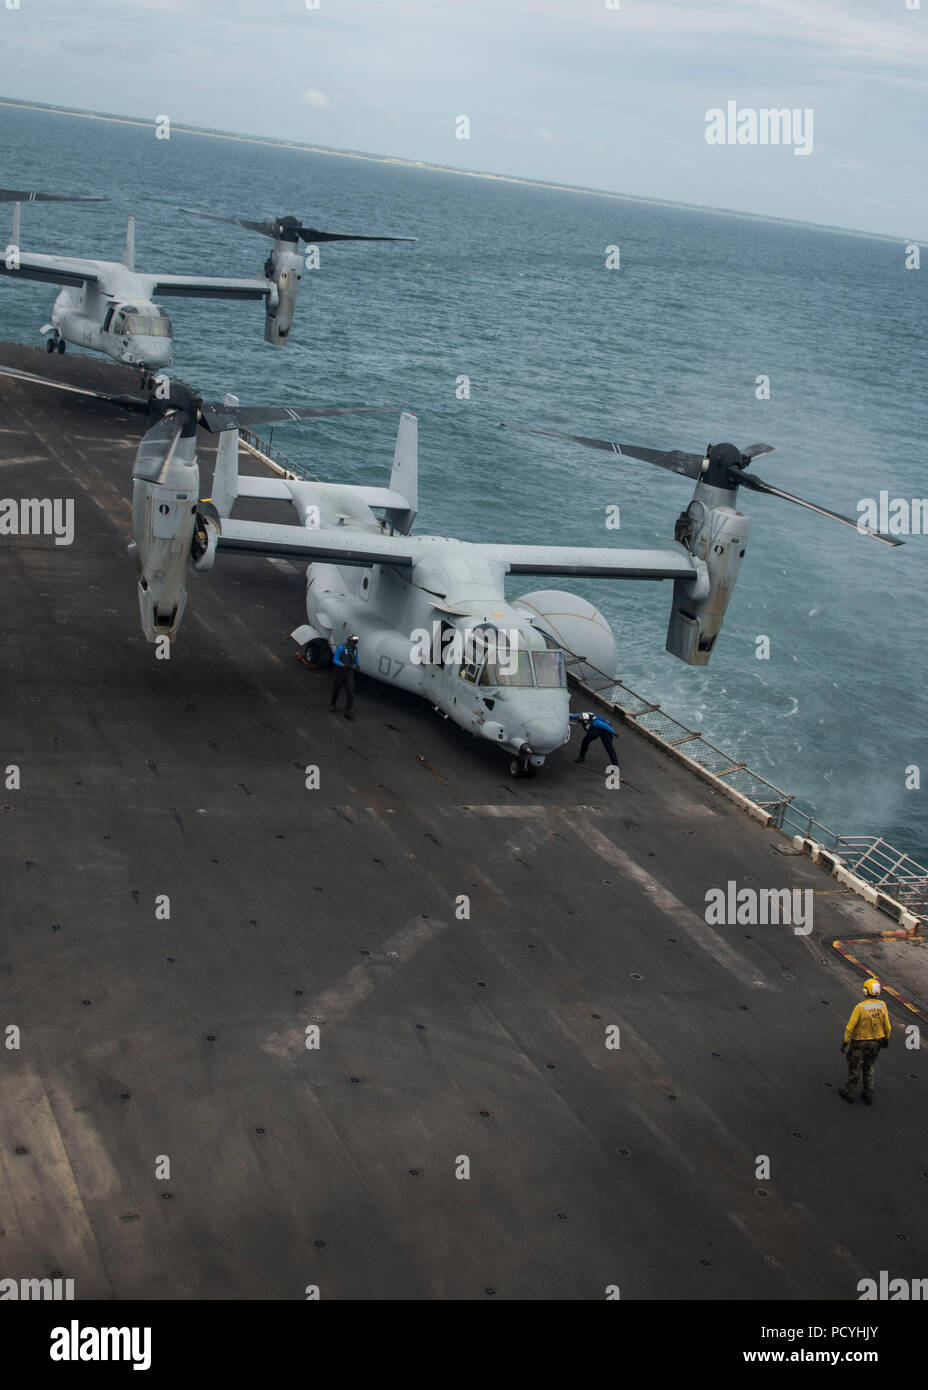 ATLANTIC OCEAN (Aug. 3, 2018) An MV-22B Osprey, attached to Marine Medium Tiltrotor Squadron (VMM) 162 (Reinforced), lands on the flight deck of the Wasp-class amphibious assault ship USS Iwo Jima (LHD 7), Aug. 3, 2018. Iwo Jima is deployed with its amphibious ready group in support of maritime security operations and theatre security cooperation efforts in Europe and the Middle East. (U.S. Navy photo by Mass Communication Specialist 3rd Class Dominick A. Cremeans/Released) Stock Photo